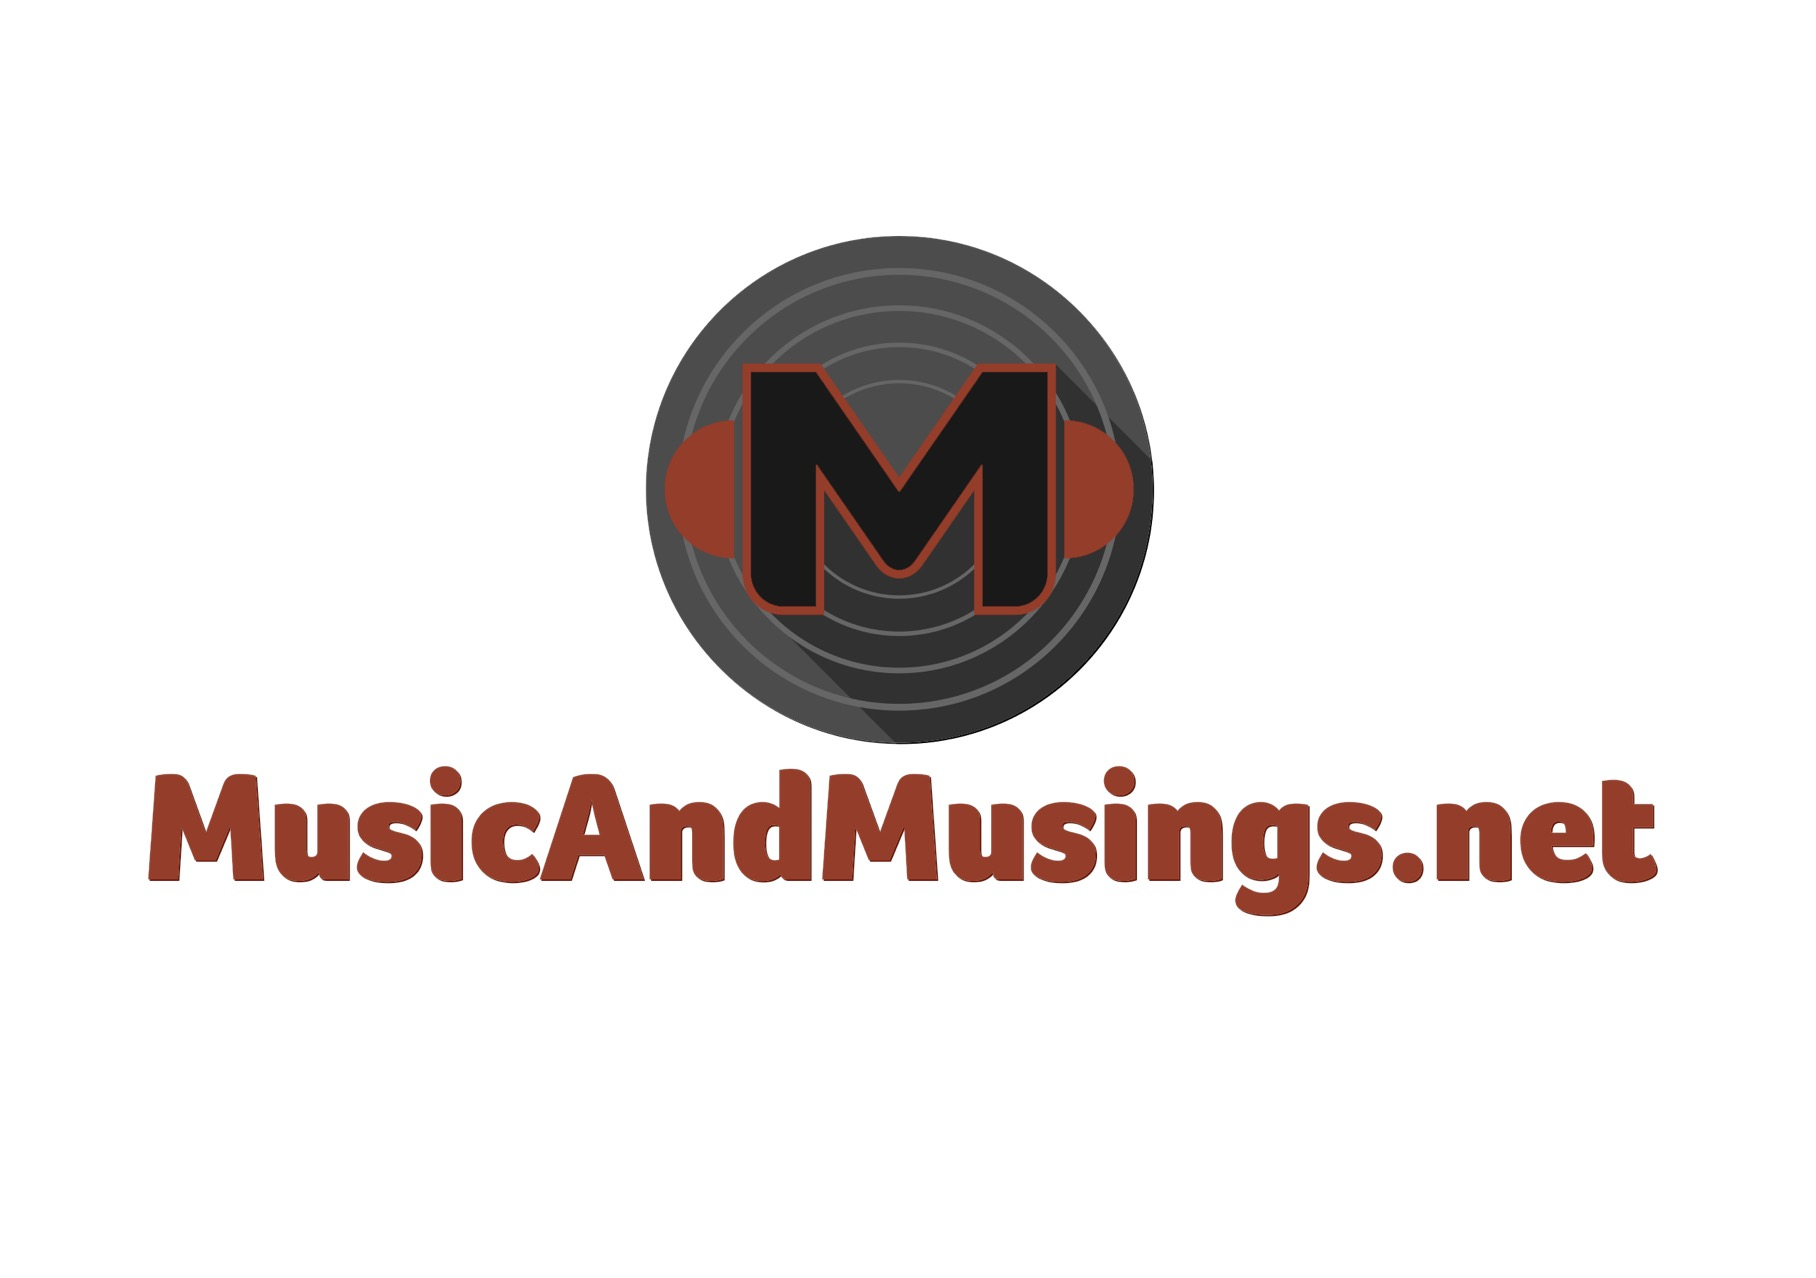 Music and Musings